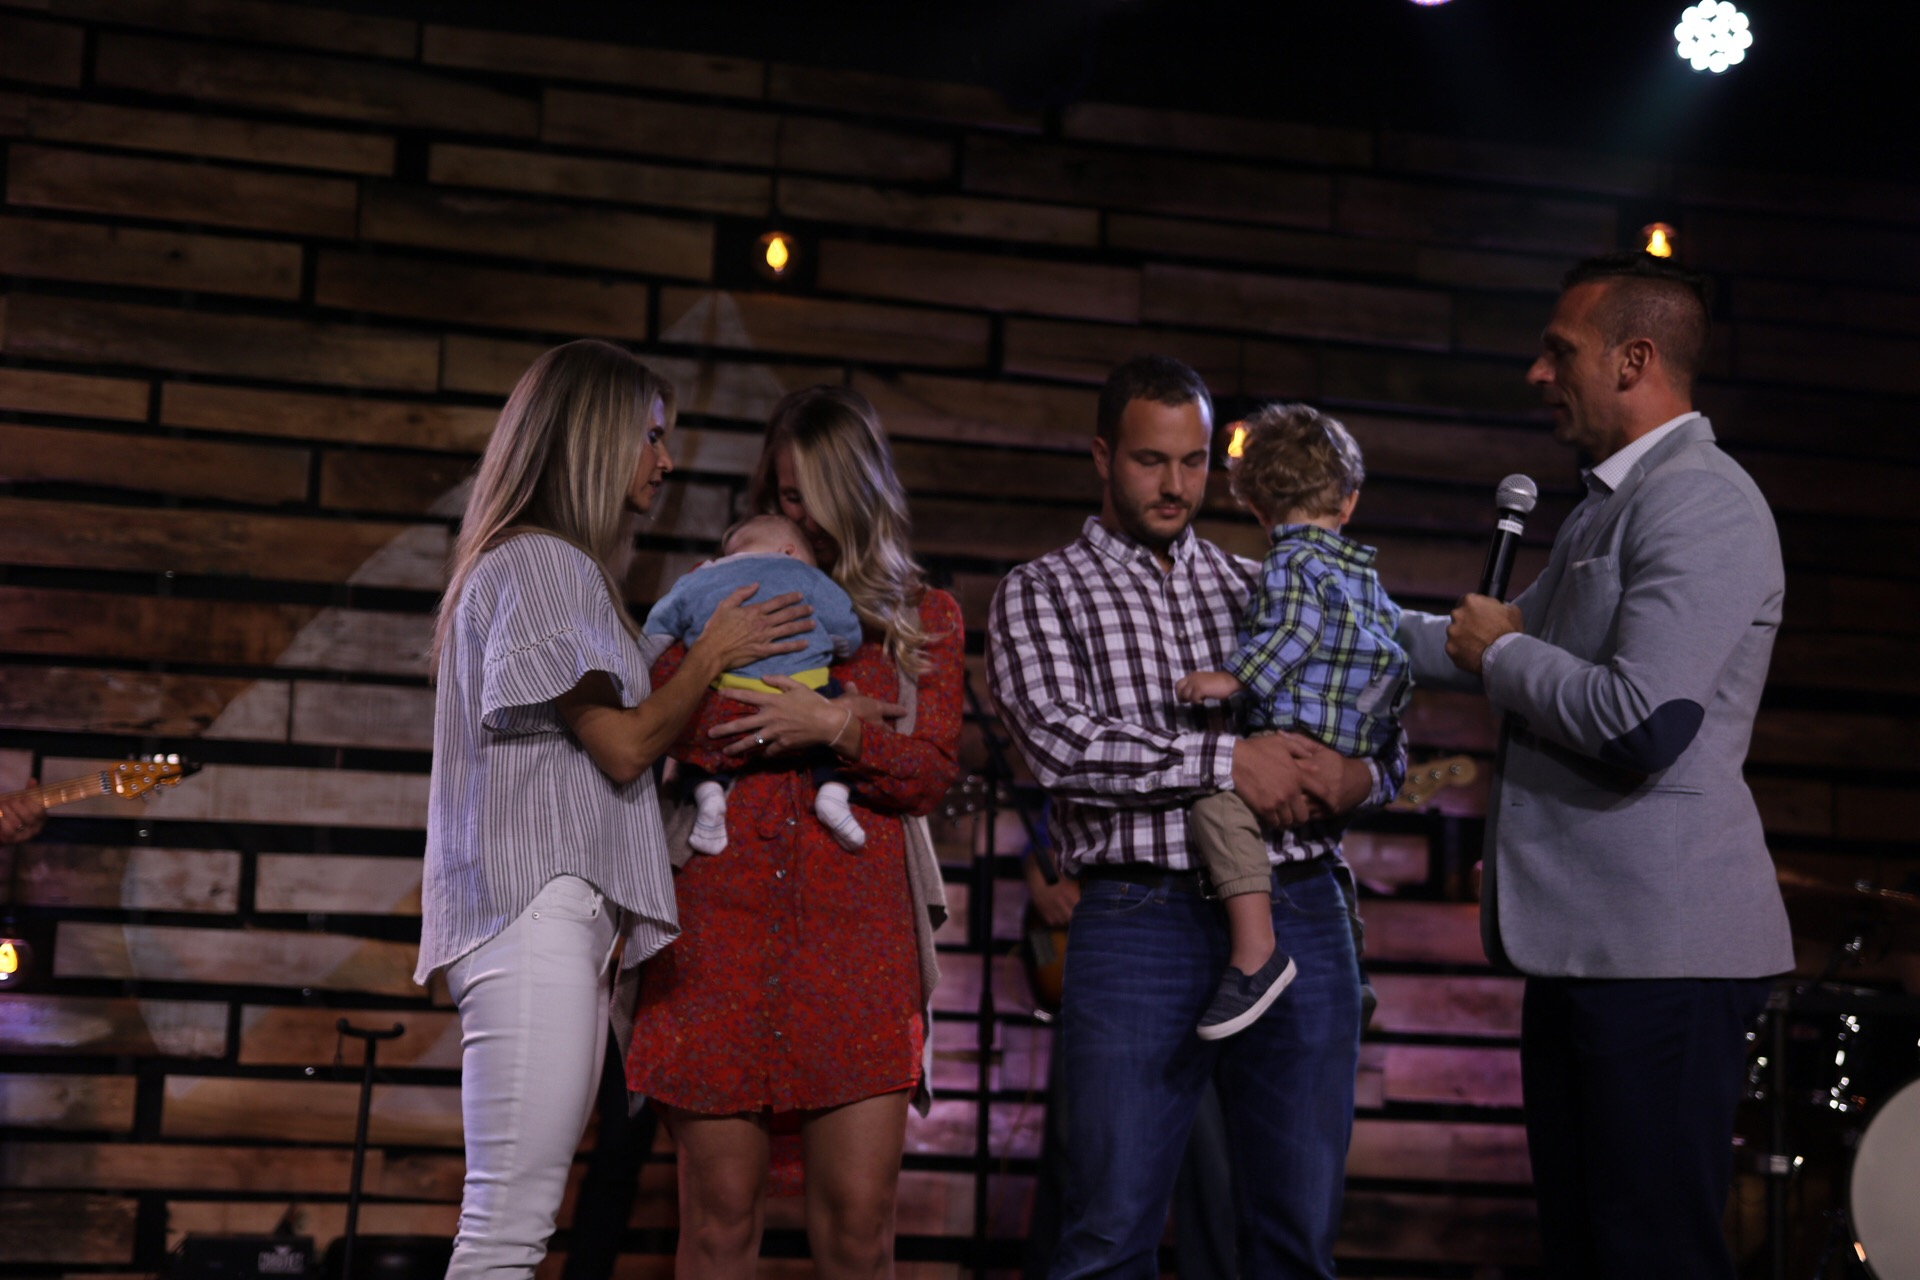 Child Dedication - Child Dedication is a ceremony in which parents make a commitment to submit their child to God's will. Even if you have an older child that has not yet been dedicated, this is a special occasion to hold with family and friends.Learn more and sign up.